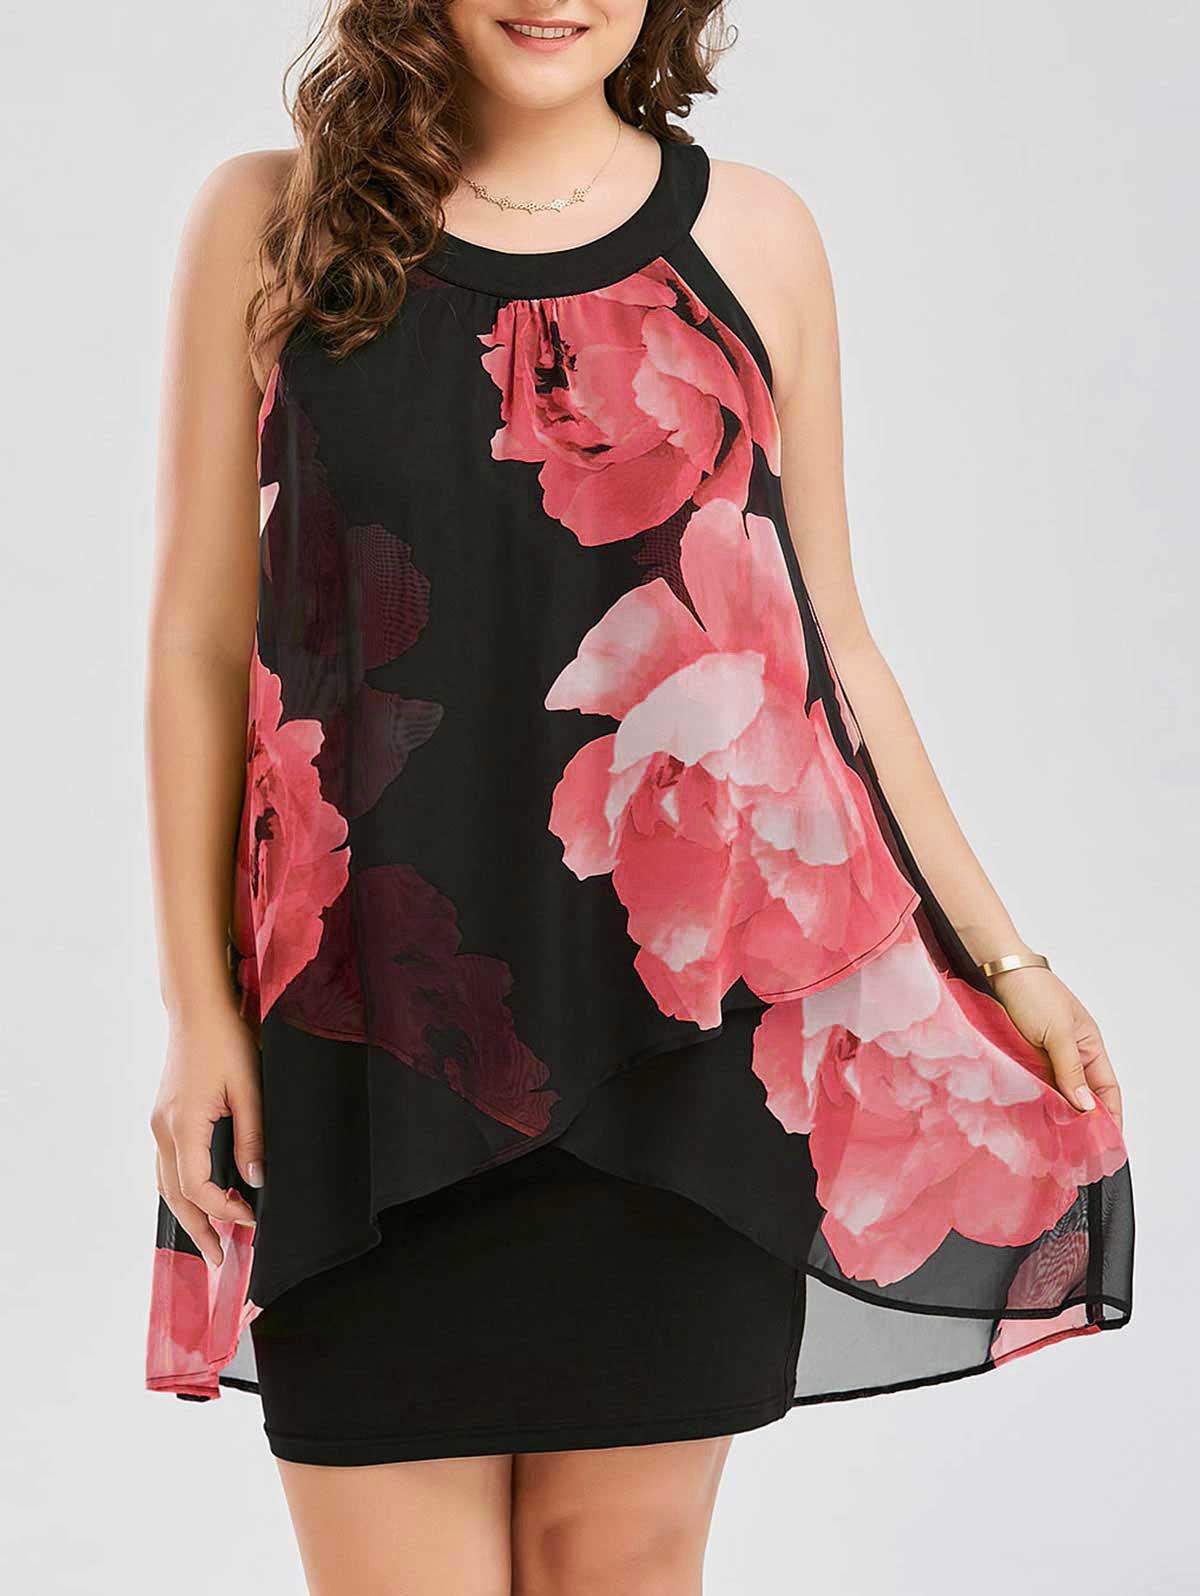 Plus Size Floral Overlay Sheath DressWOMEN<br><br>Size: XL; Color: RED; Style: Club; Material: Cotton,Polyester,Spandex; Silhouette: Sheath; Dresses Length: Mini; Neckline: Round Collar; Sleeve Length: Sleeveless; Pattern Type: Floral; With Belt: No; Season: Summer; Weight: 0.3500kg; Package Contents: 1 x Dress;